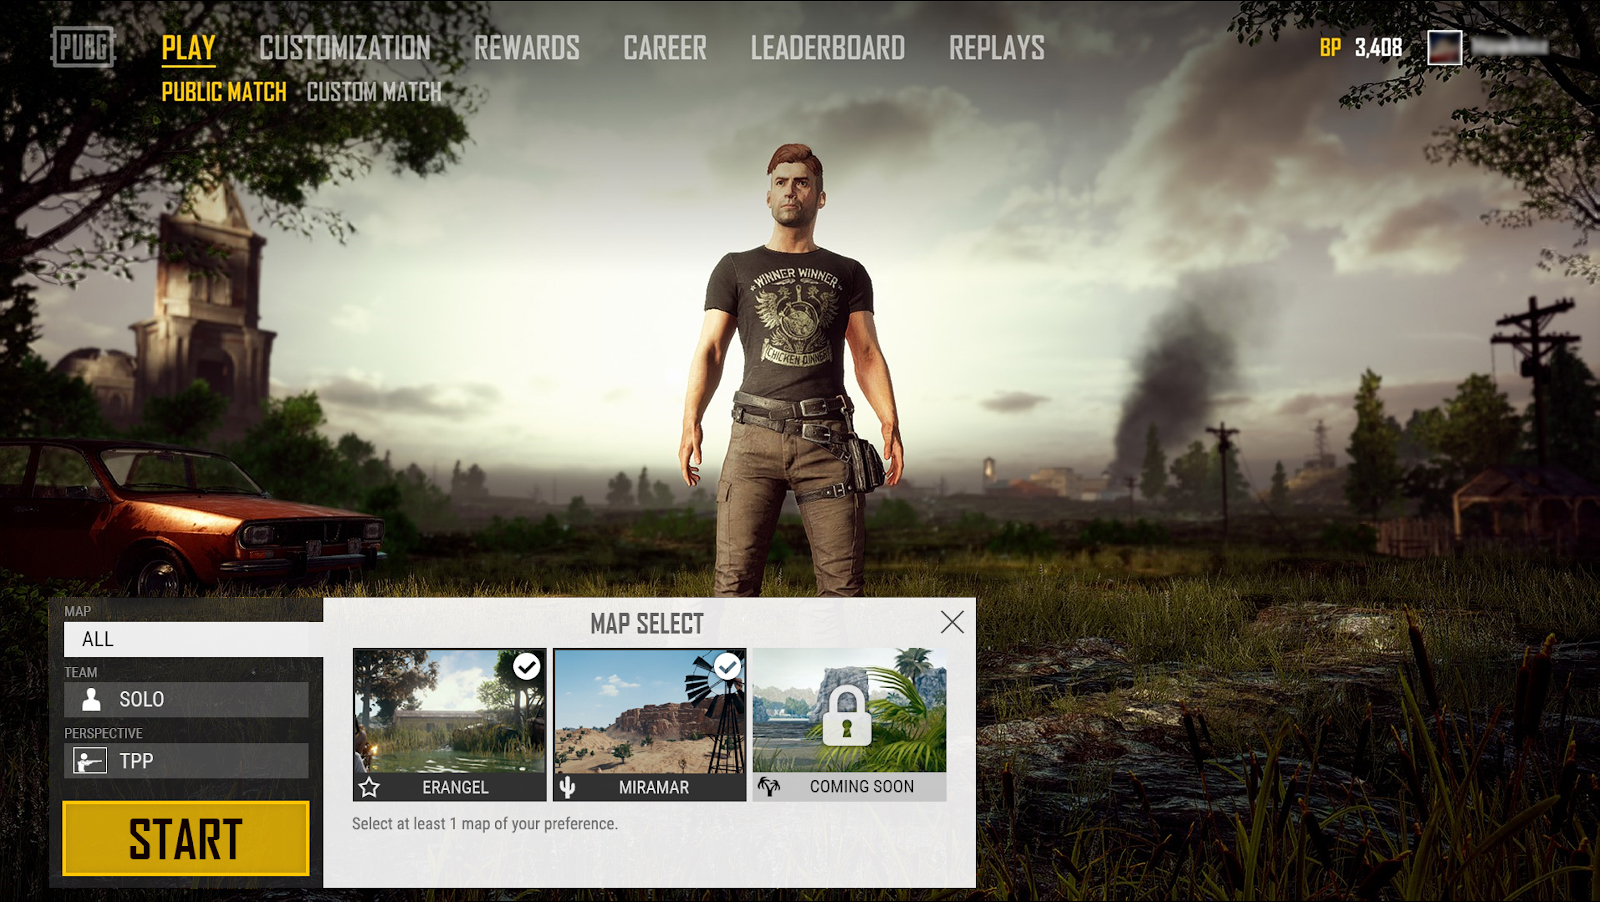 Photo of PUBG will include Map Selection allowing players to skip Miramar or Erangel by the click of a mouse button